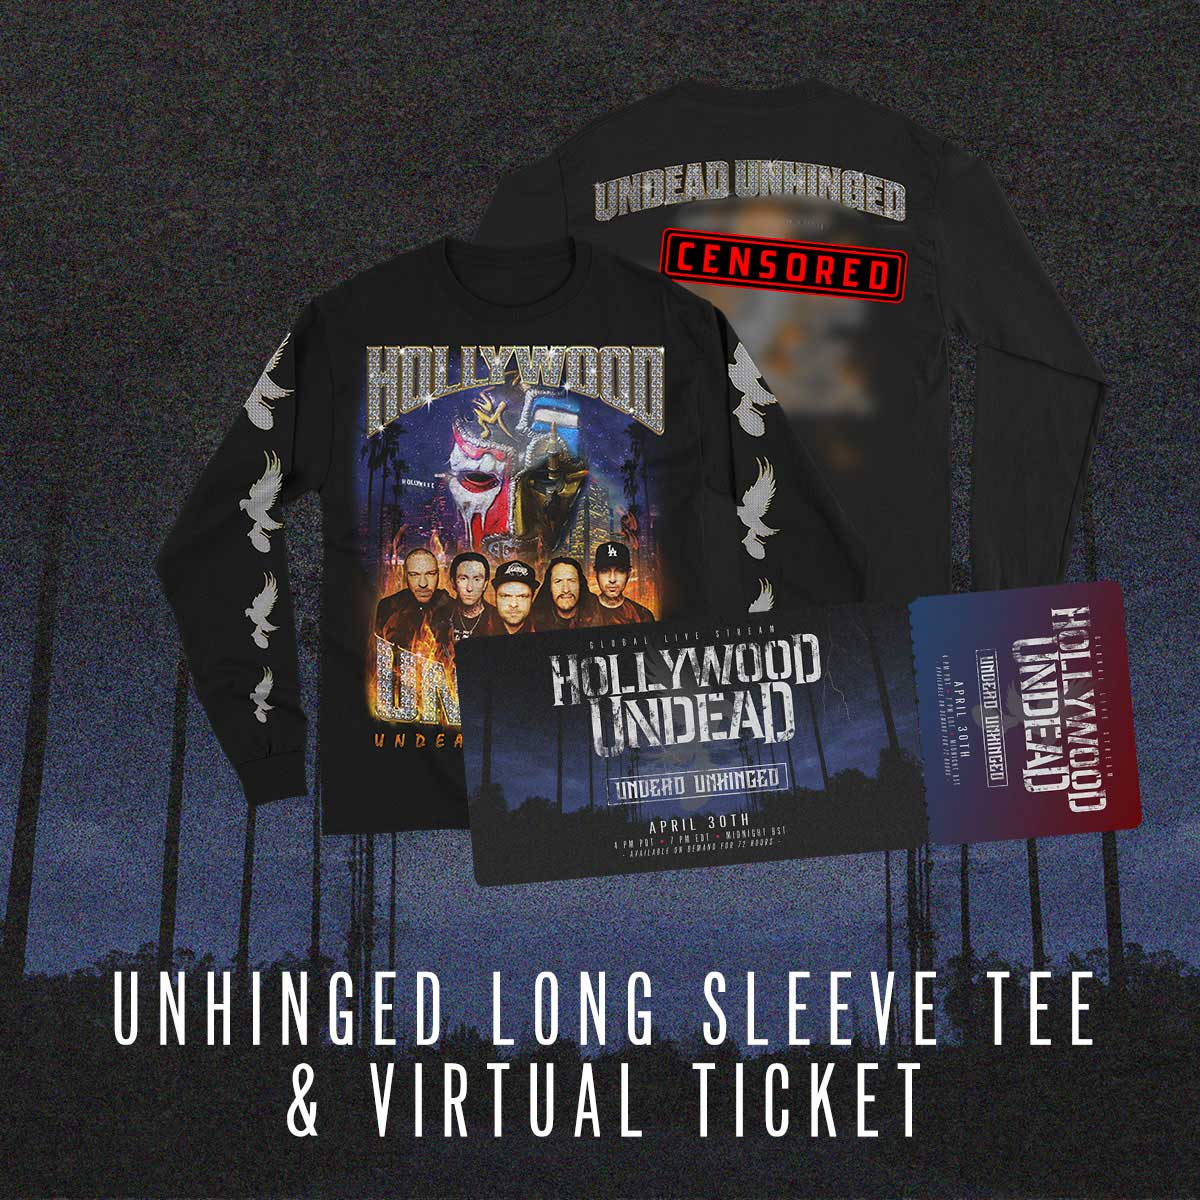 Image of Undead Unhinged Ticket + Bling Long Sleeve Tee